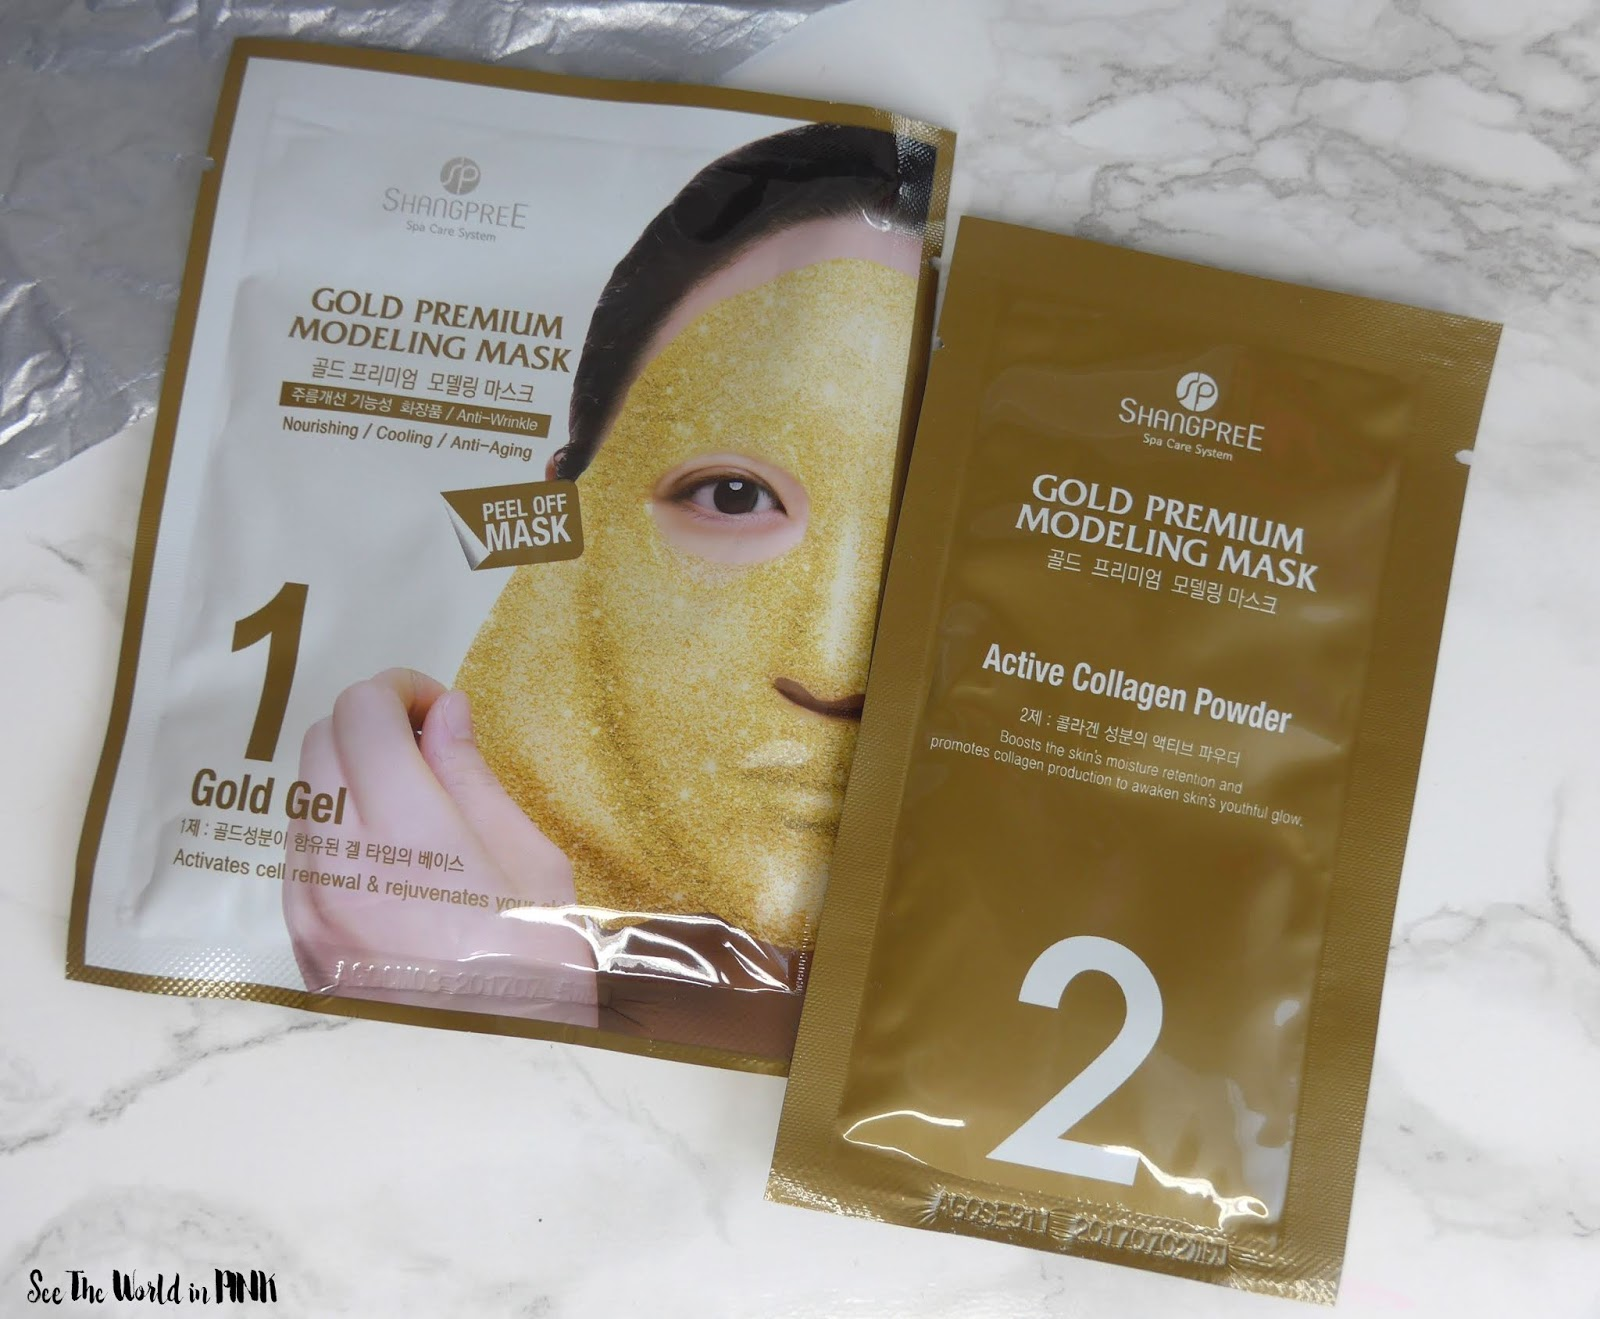 Skincare Sunday #CBBGetsSheetFaced Week Four Recap with Reviews - Shangpree Gold Premium Modeling Mask